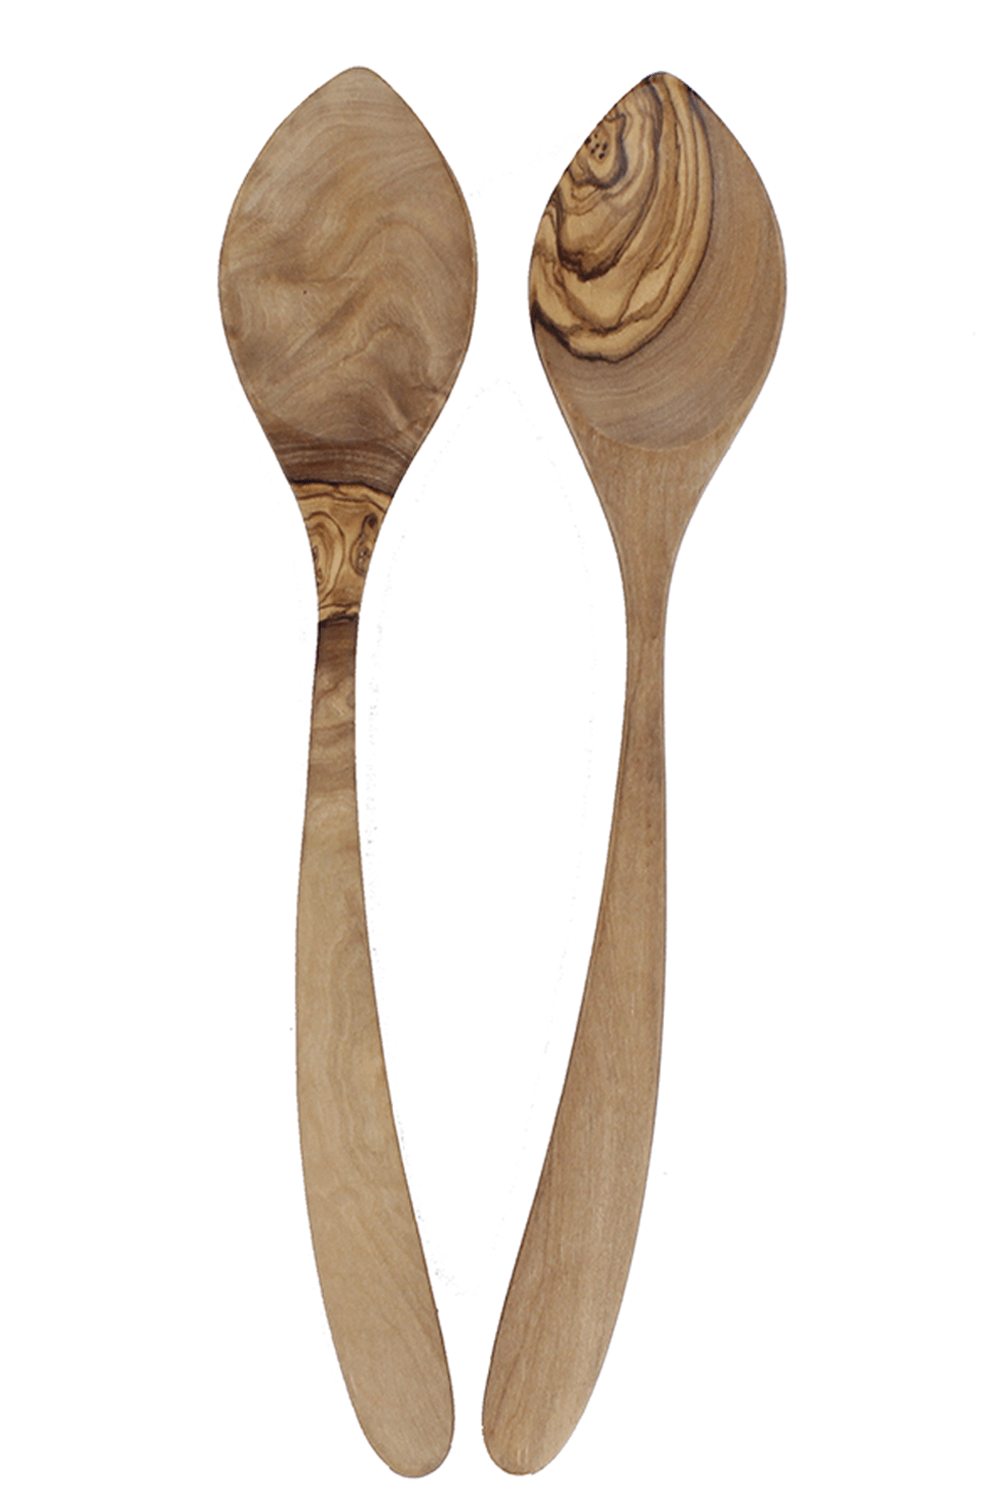 Tulip Left-Right Spoonolivewood@southstoredesign